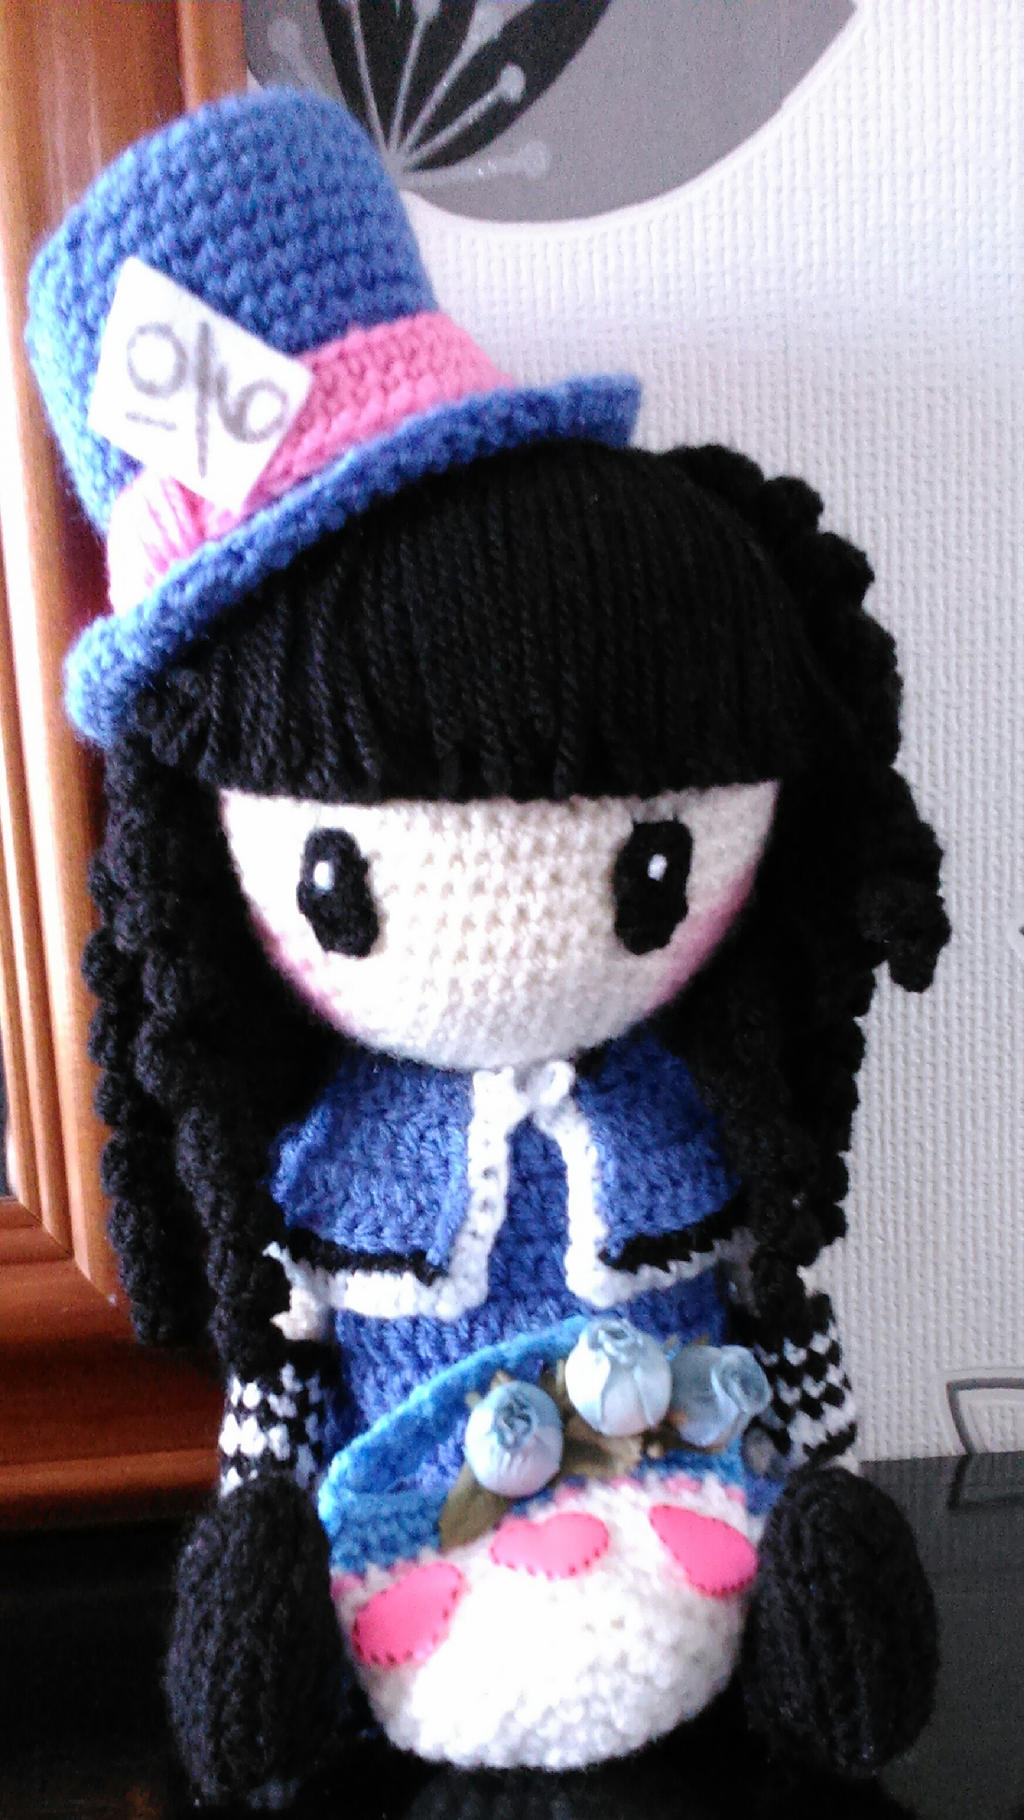 The Hatter, Gorjuss Amigurumi by Anaseed on DeviantArt